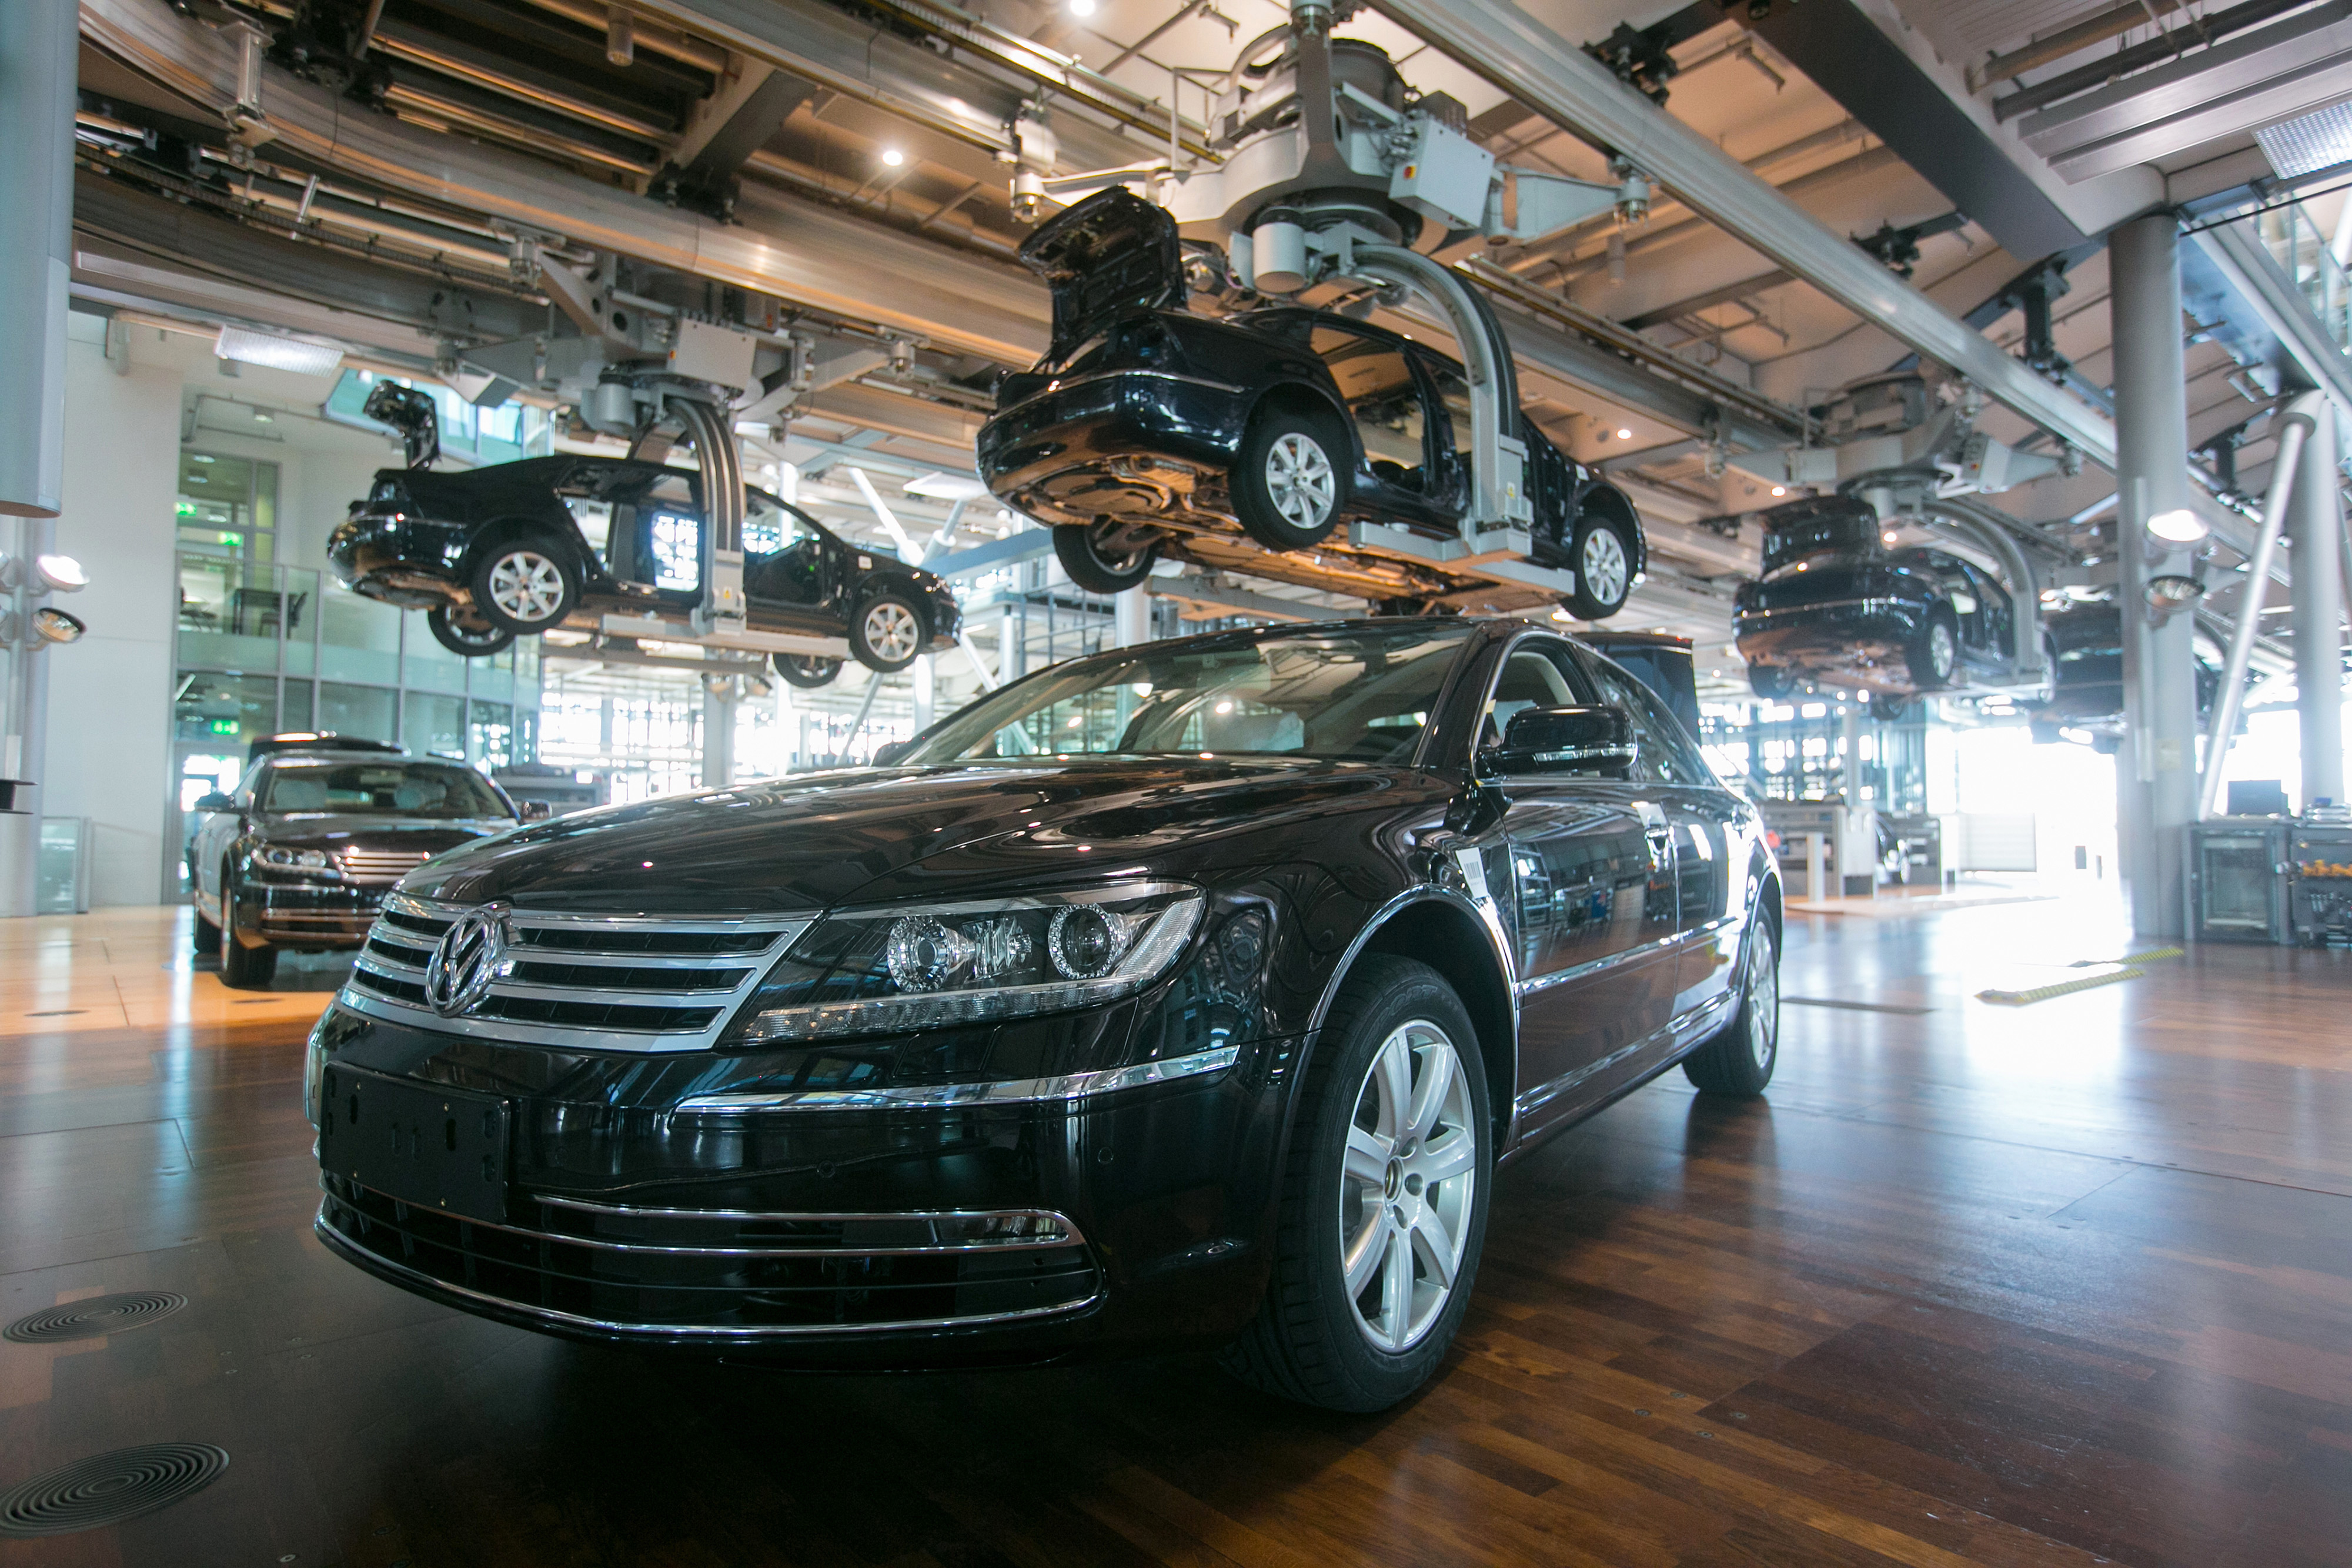 Volkswagen Phaeton automobiles move along elevated conveyors inside the Volkswagen AG factory in Dresden, Germany, on Thursday, April 9, 2015. German industrial production was bolstered by investment-goods output in February, highlighting improved confidence in the recovery in Europe's largest economy. Photographer: Krisztian Bocsi/Bloomberg